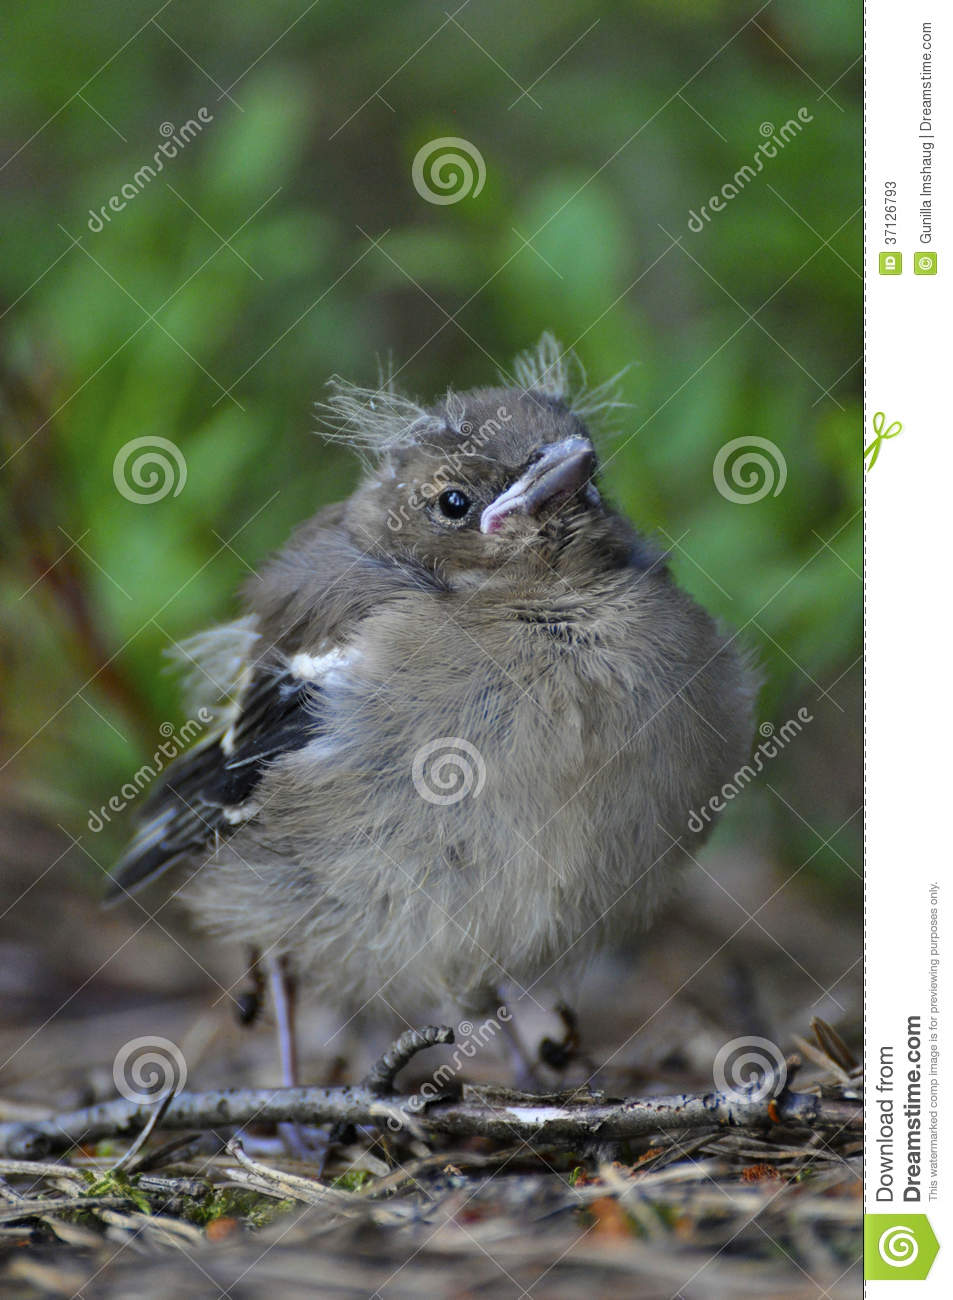 how to help baby bird fallen out of nest